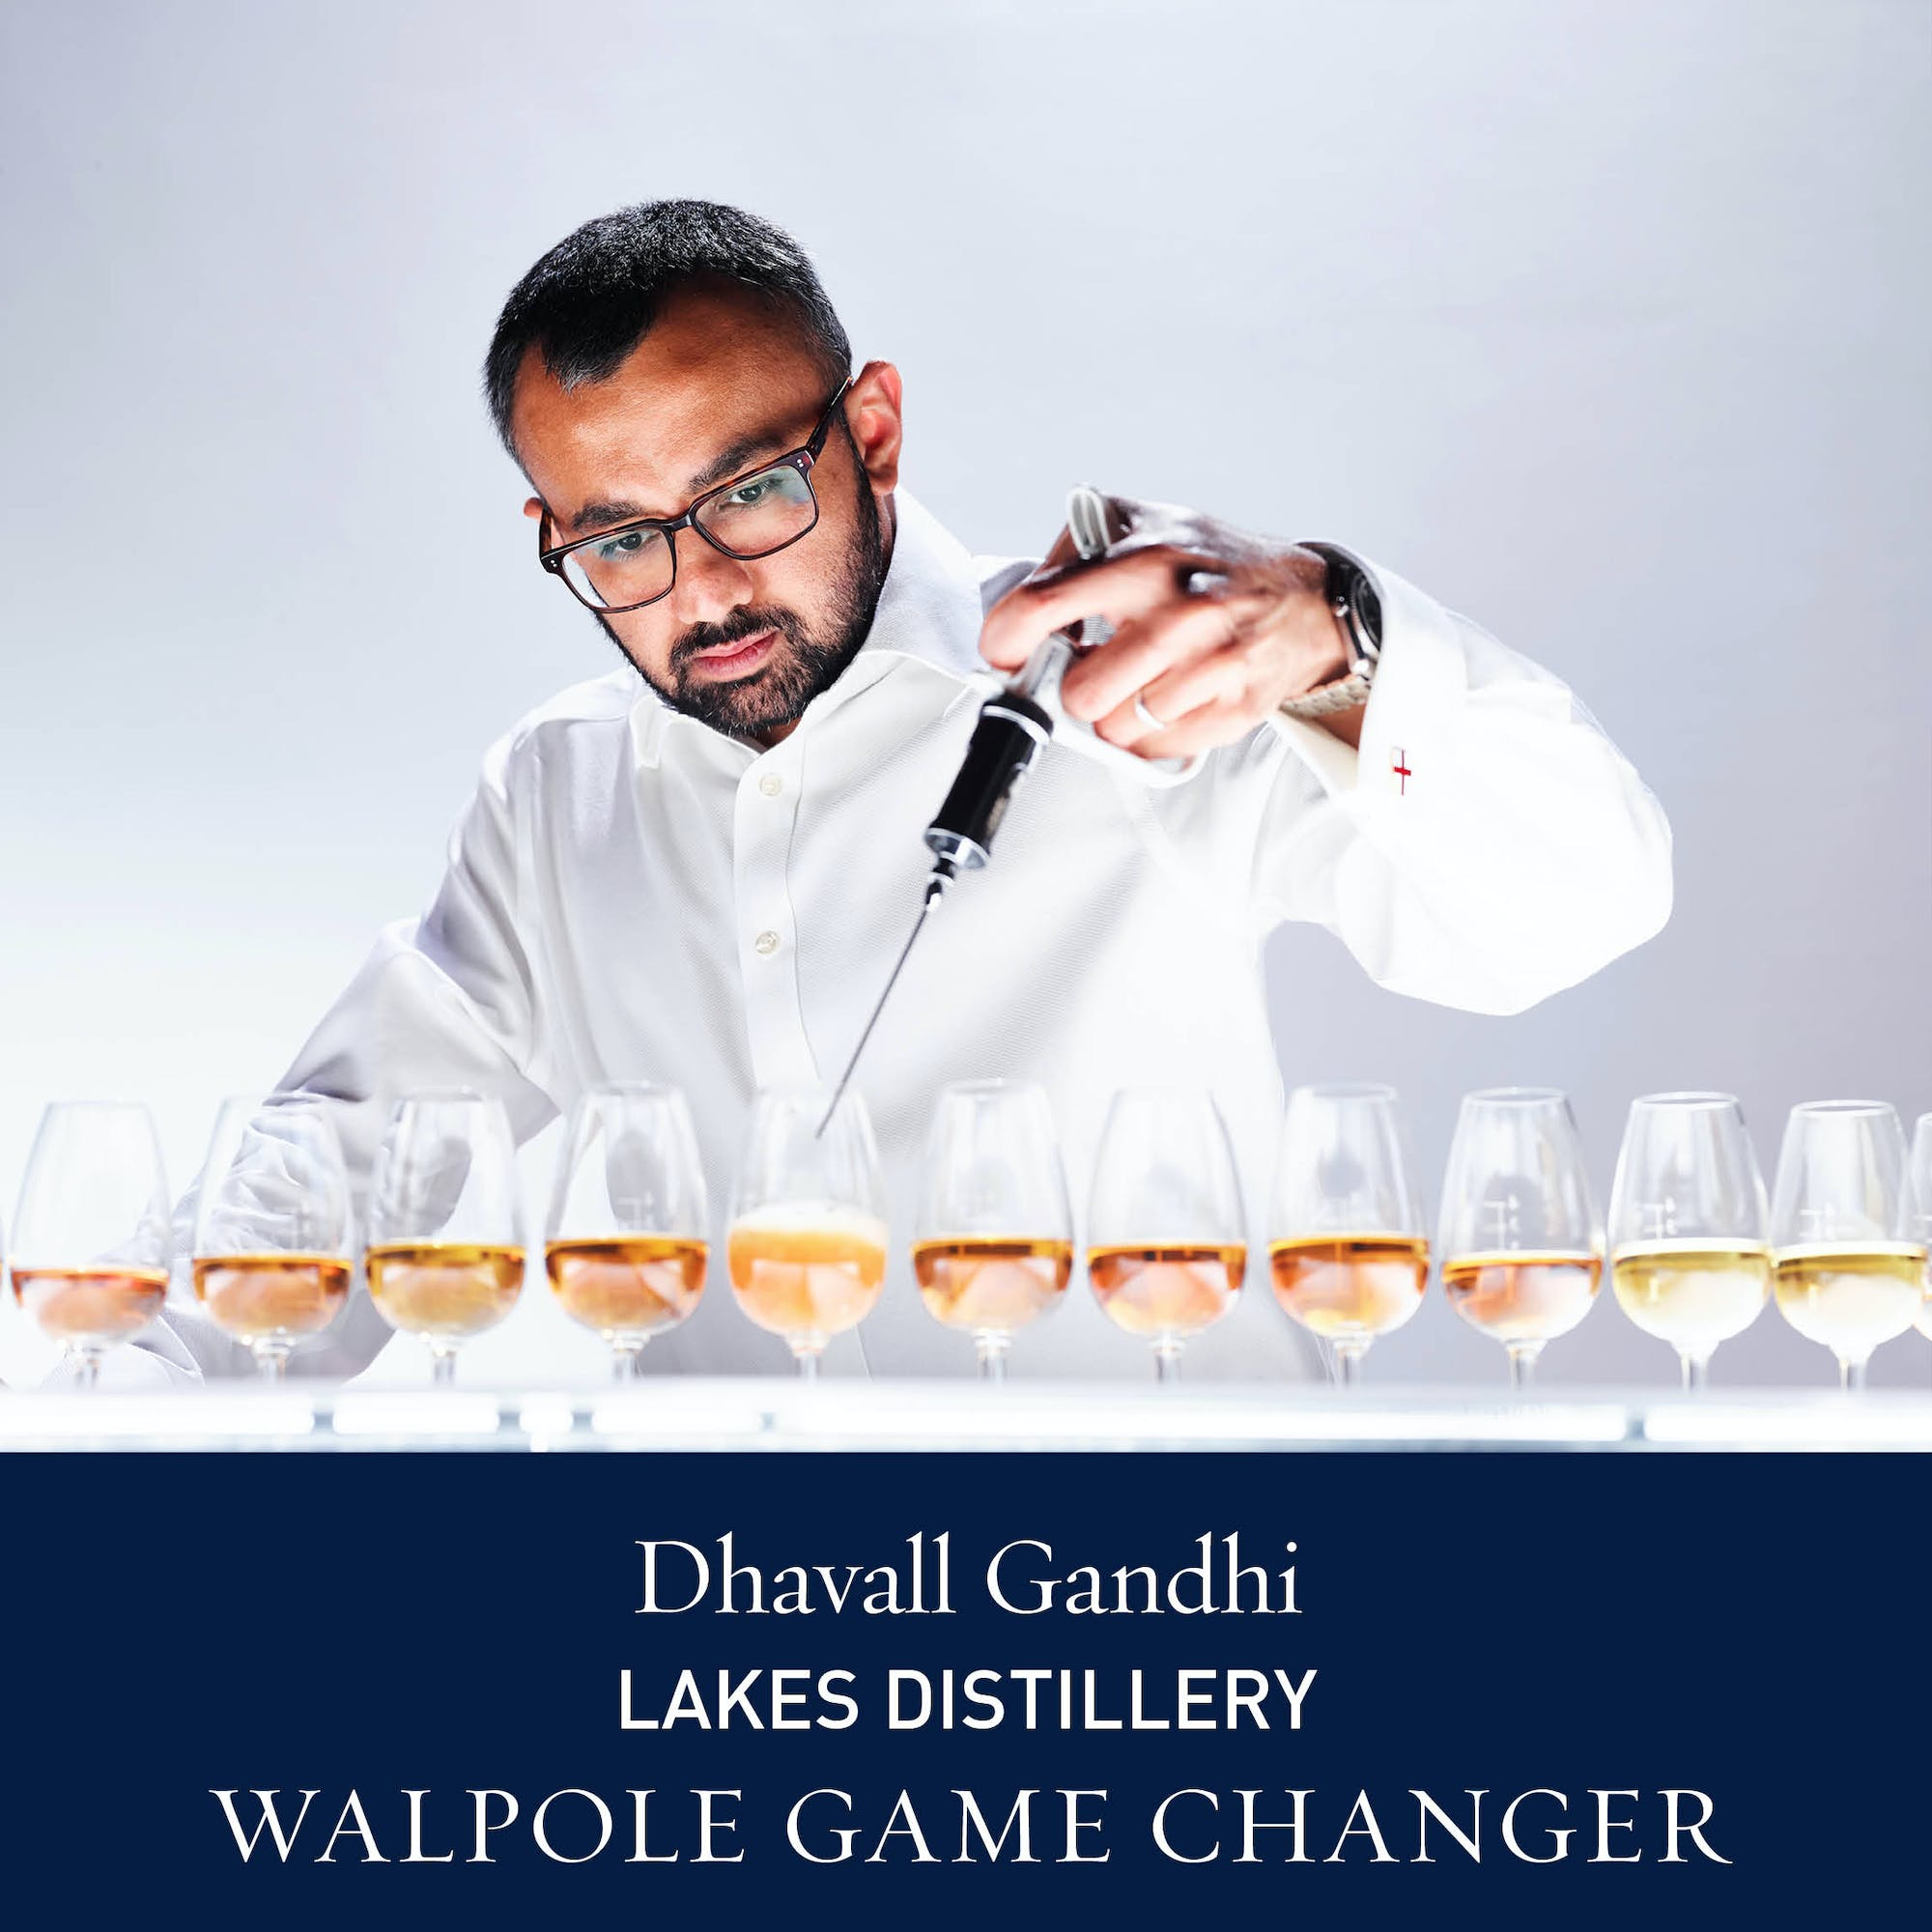 The Walpole Power List  The Game Changers: Dhavall Gandhi, Whisky Director, The Lakes Distillery